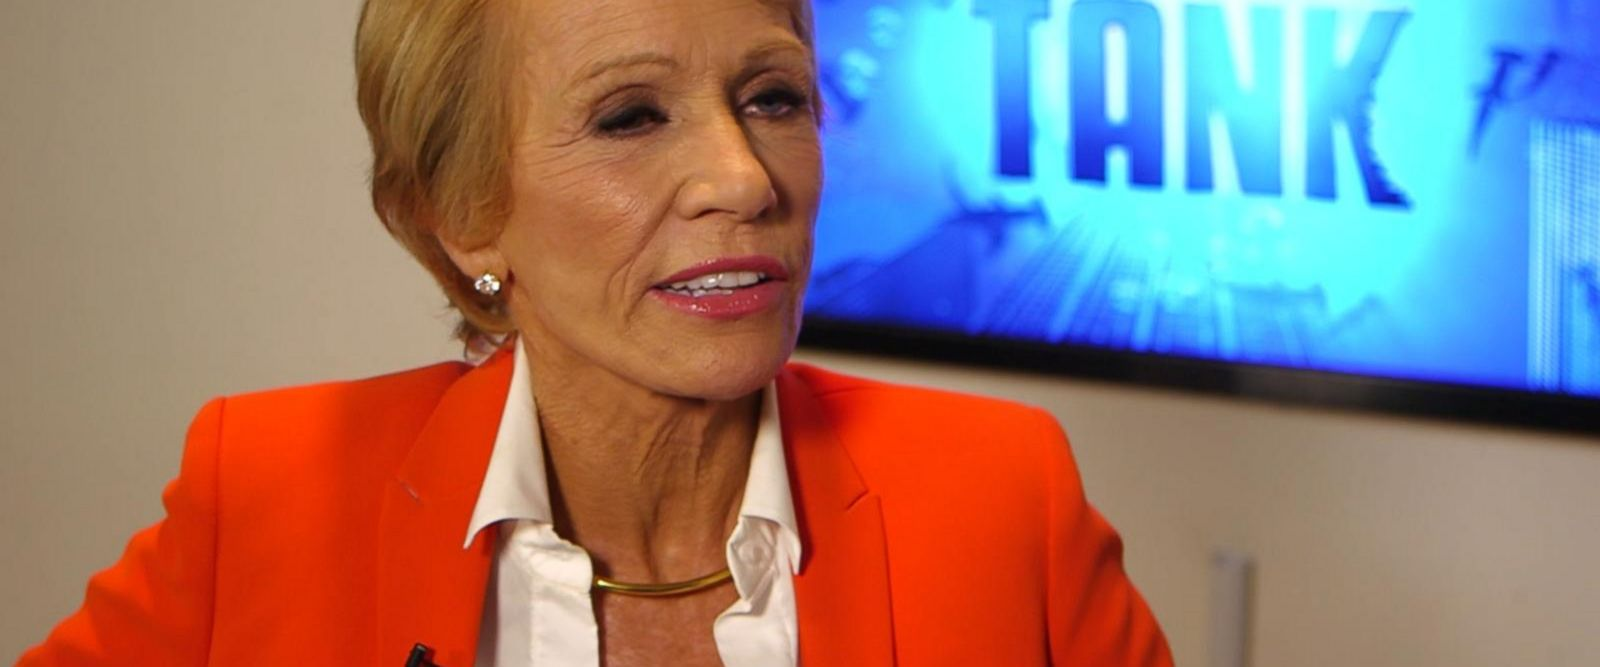 VIDEO: Barbara Corcoran discusses her time on 'Dancing With the Stars'